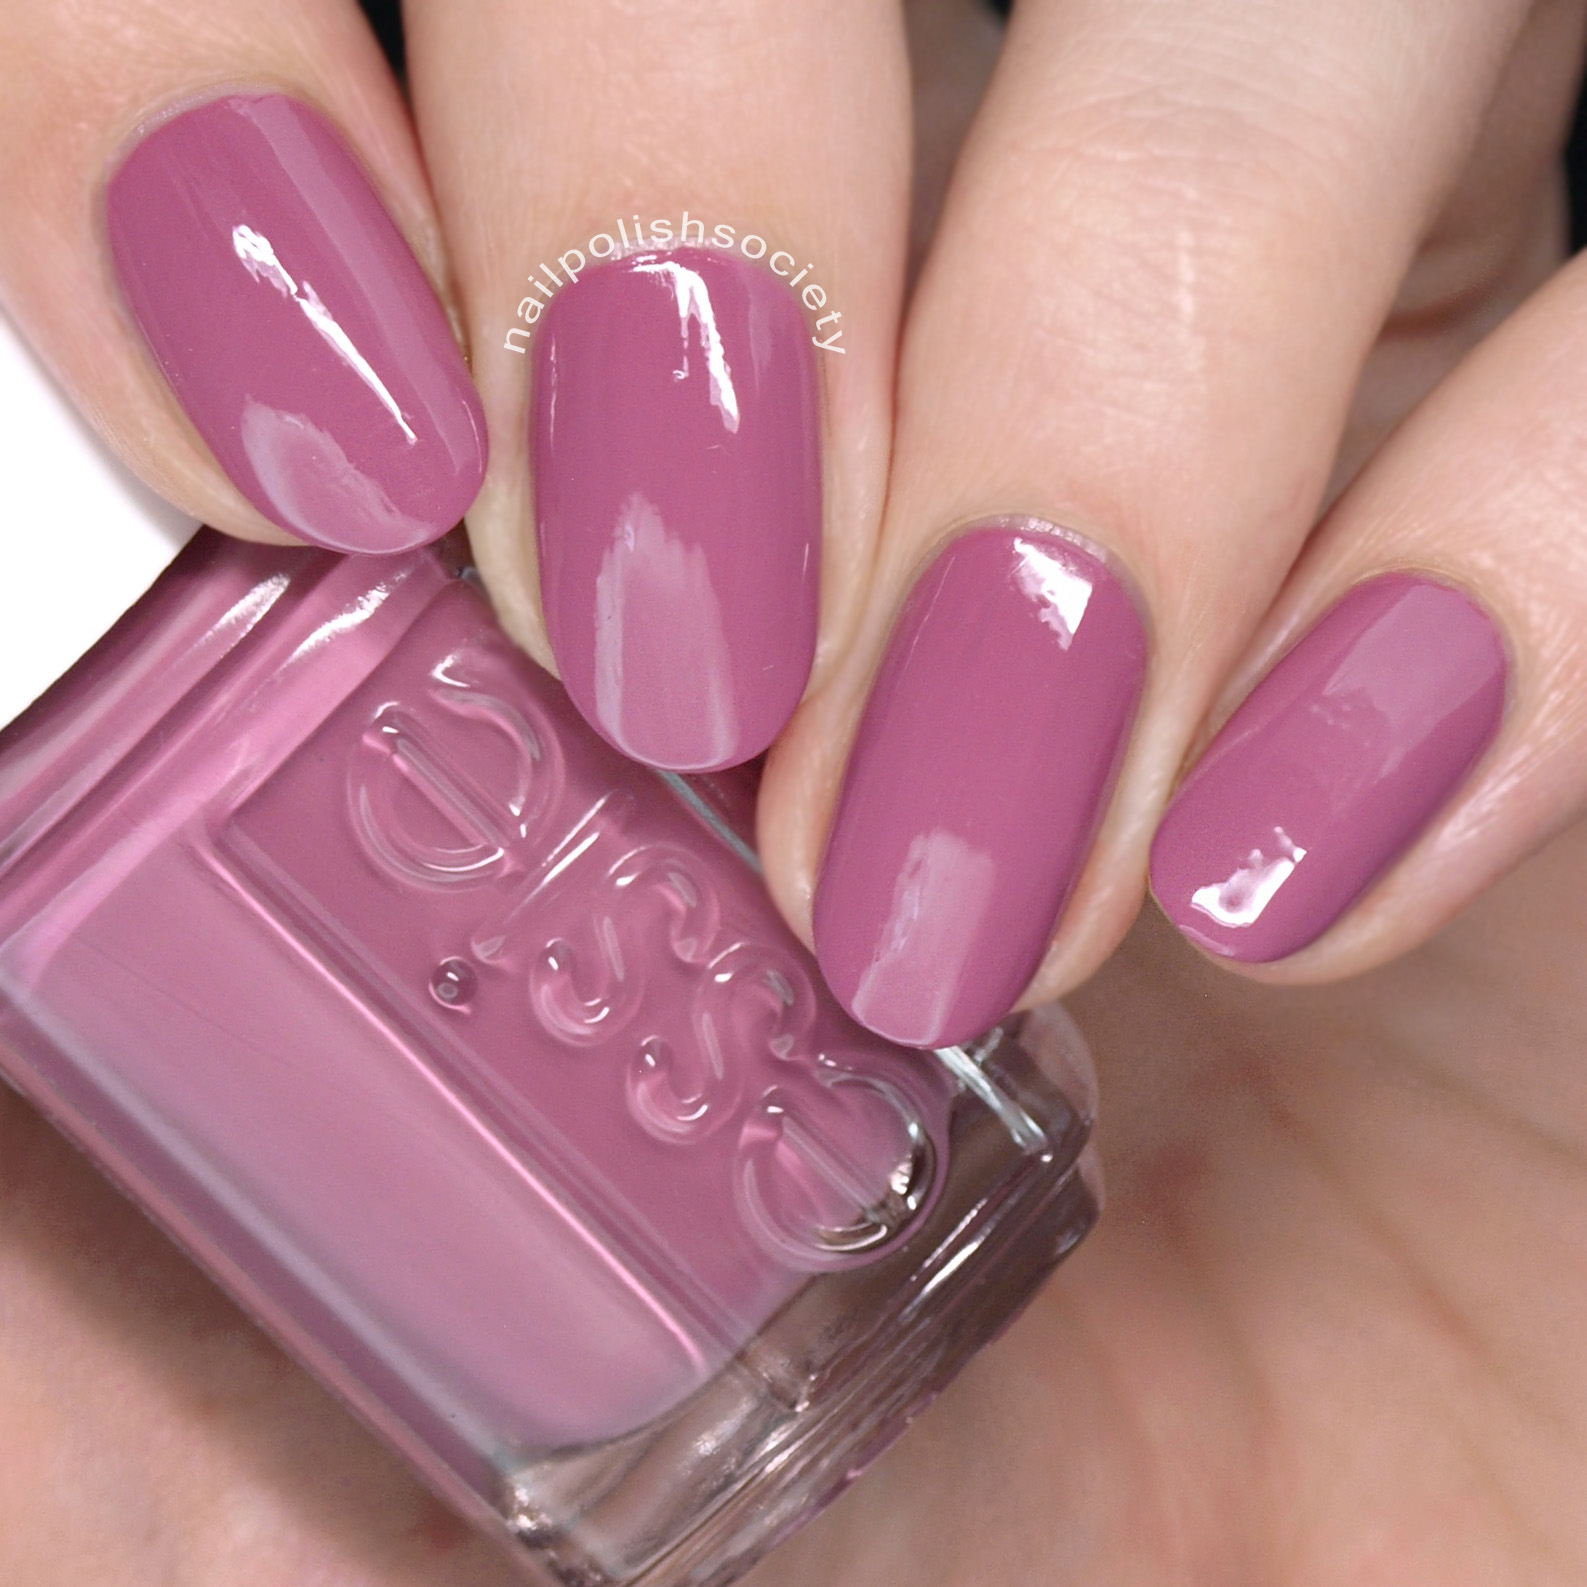 Nail Polish Society: Essie Treat Love & Color Swatches and Review